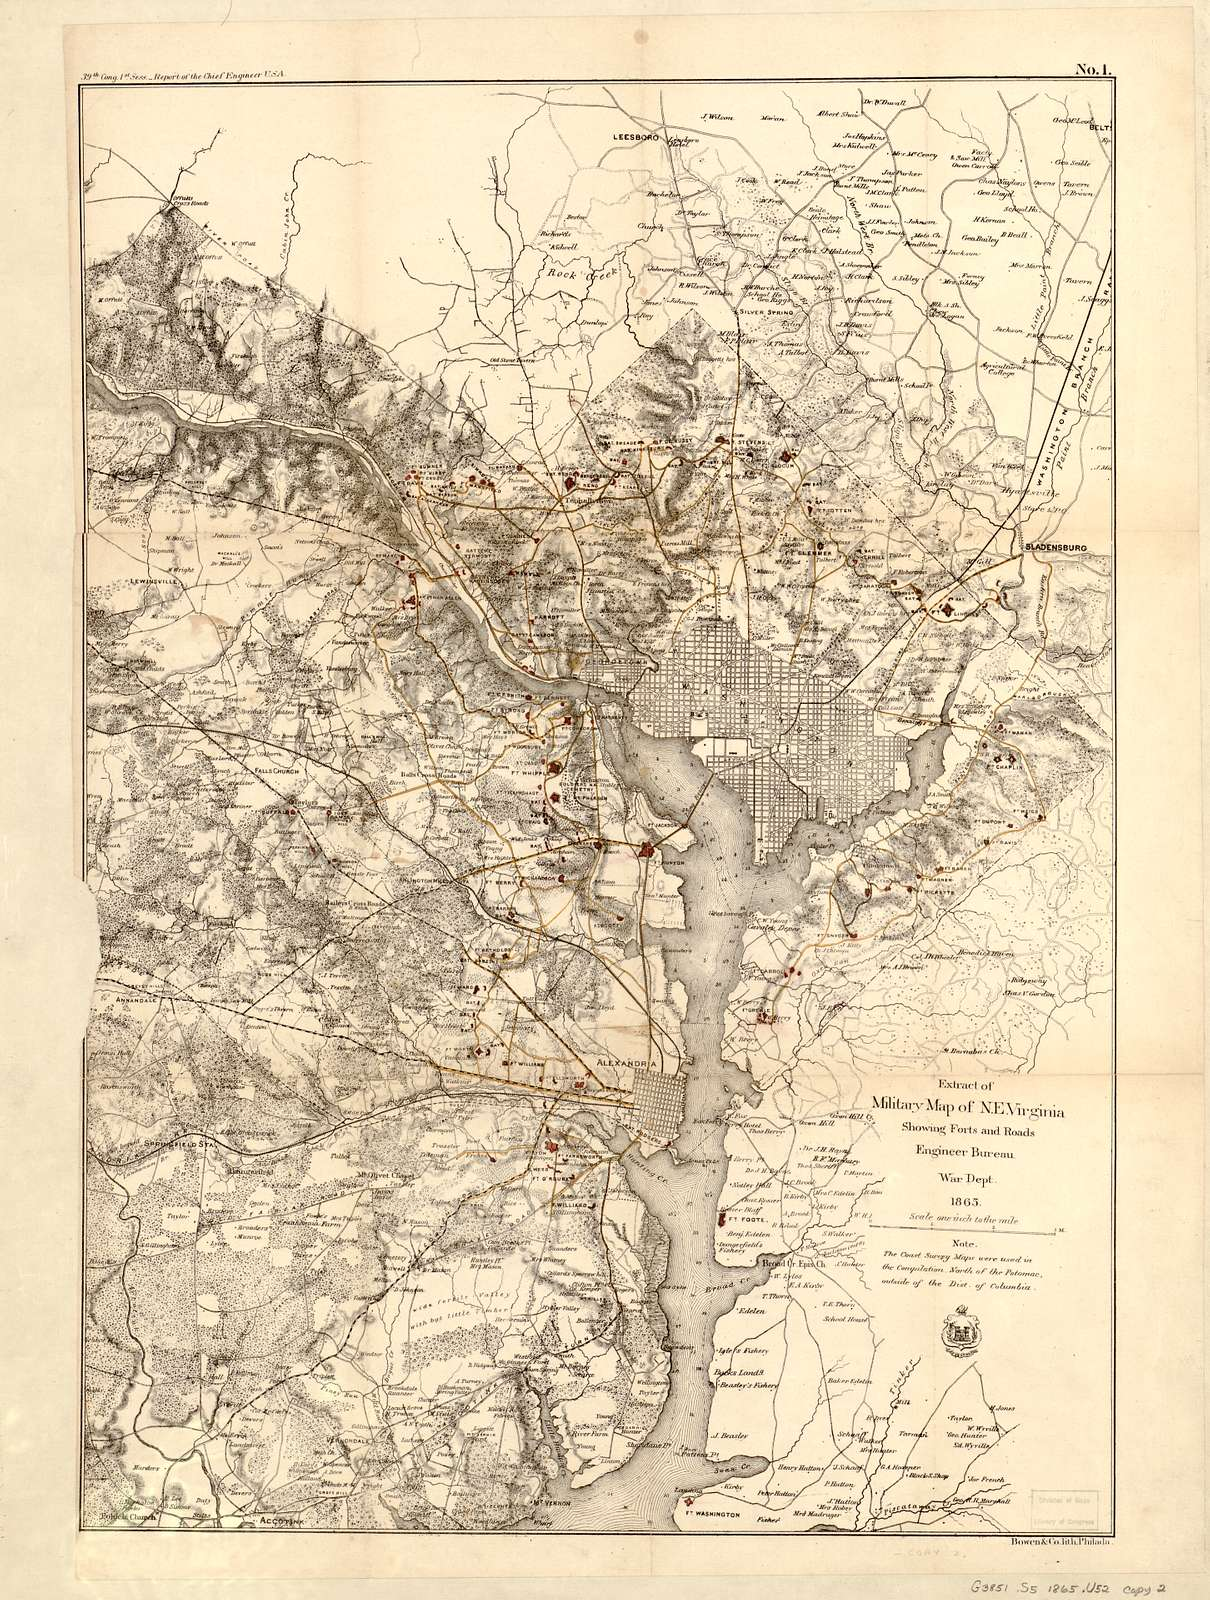 Extract of military map of N.E. Virginia showing forts and roads.